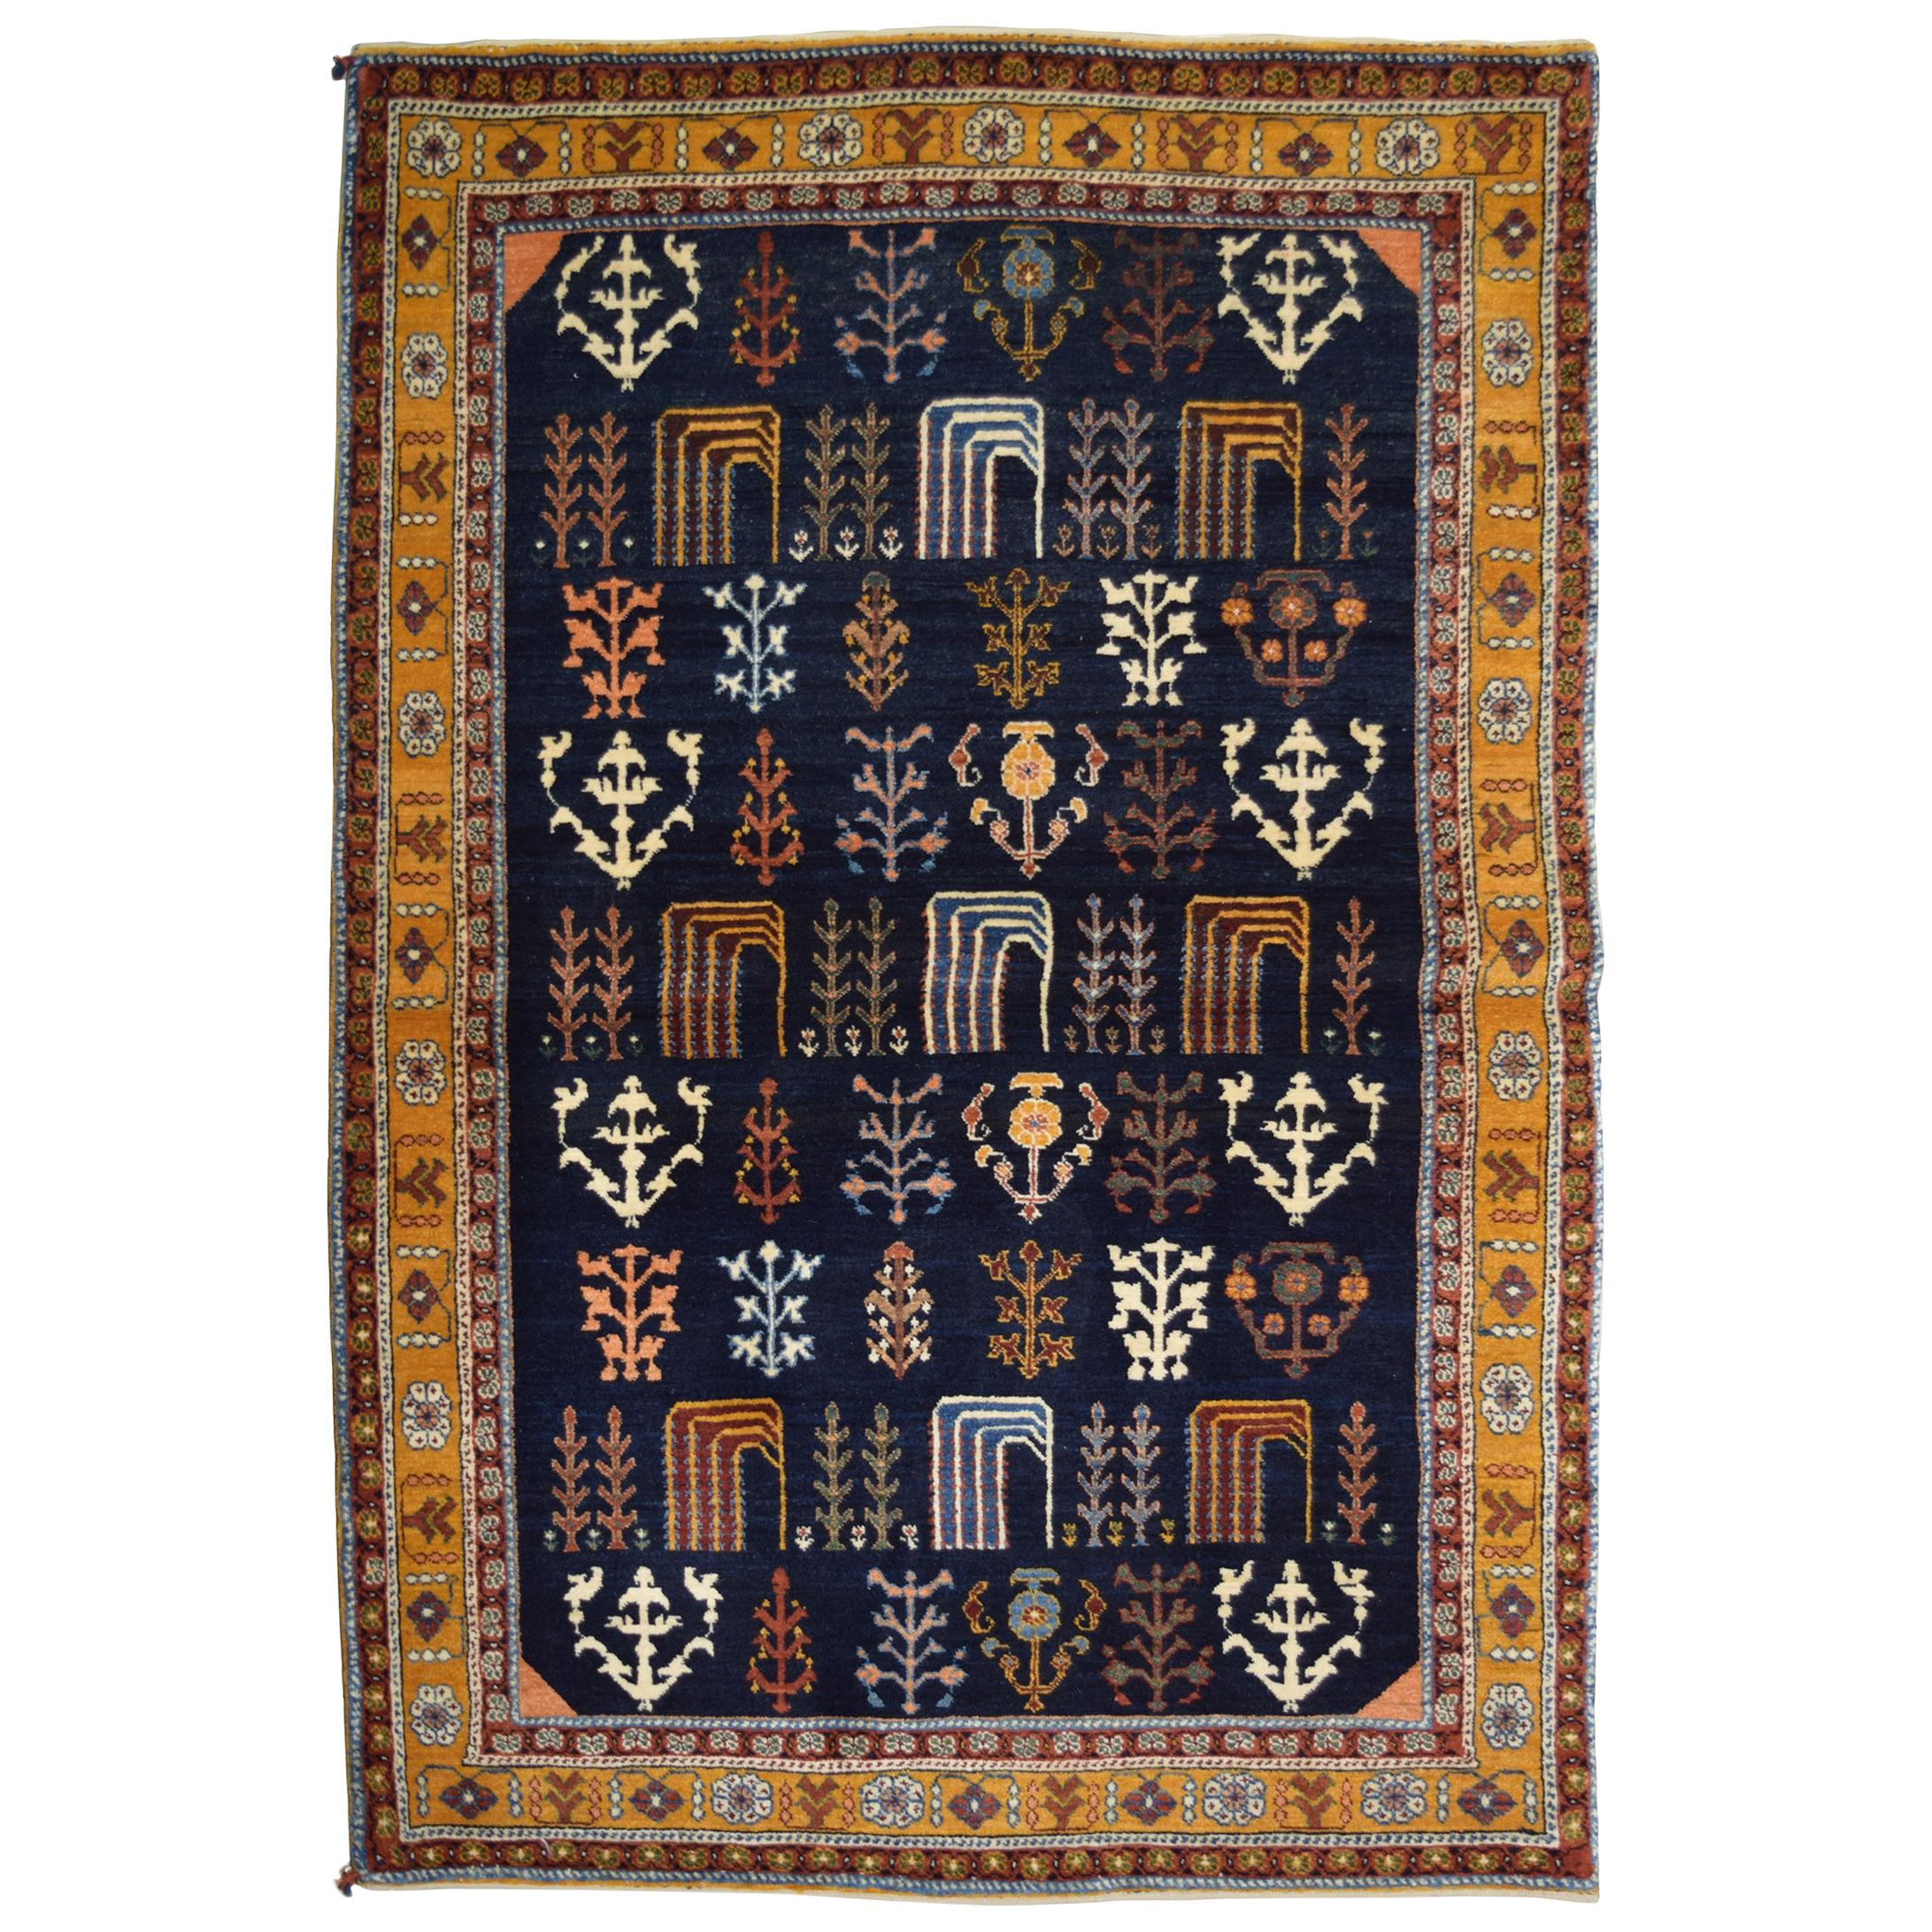 Blue and Gold Persian Kashkouli Carpet with Tree of Life Design